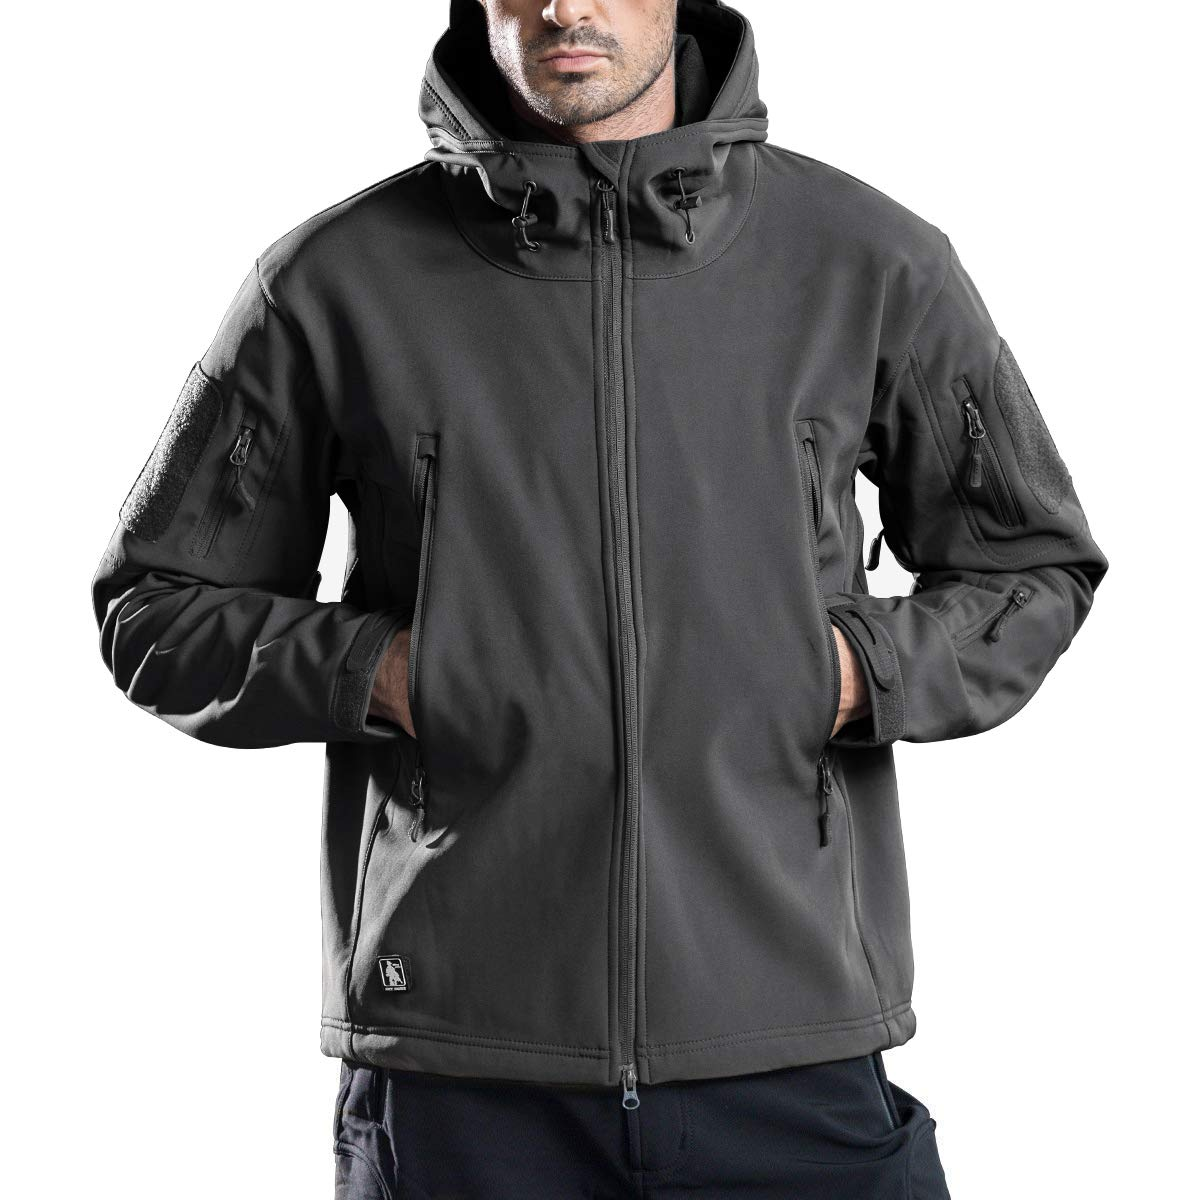 FREE SOLDIER Men's Outdoor Waterproof Soft Shell Hooded Military Tactical Jacket(Gray Small) by FREE SOLDIER